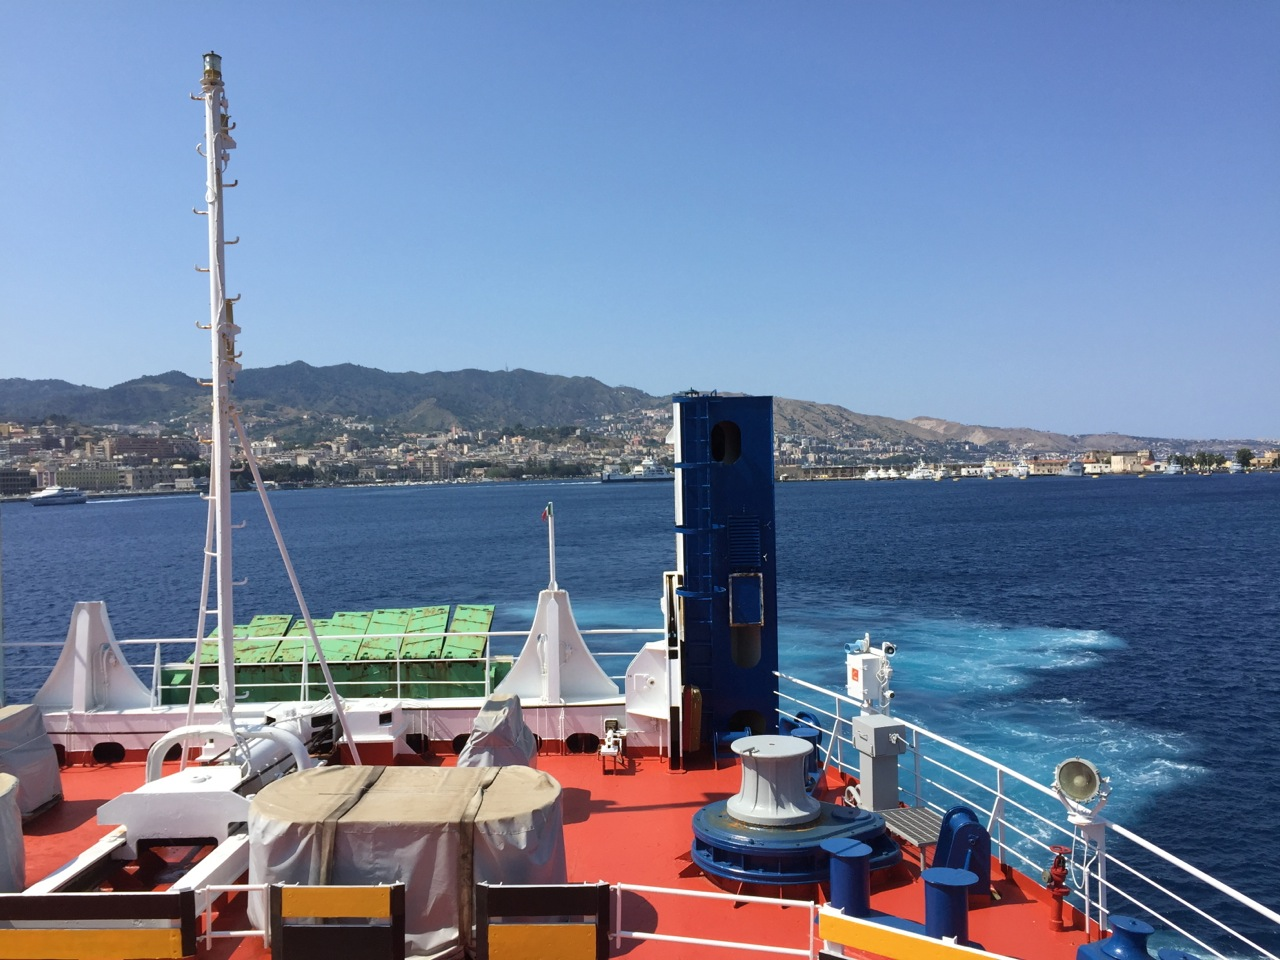 The train loaded both its passengers and passenger cars onto the ferry crossing the channel from the toe of Italy to Messina, Sicily. We were thankful for the fresh air on deck!